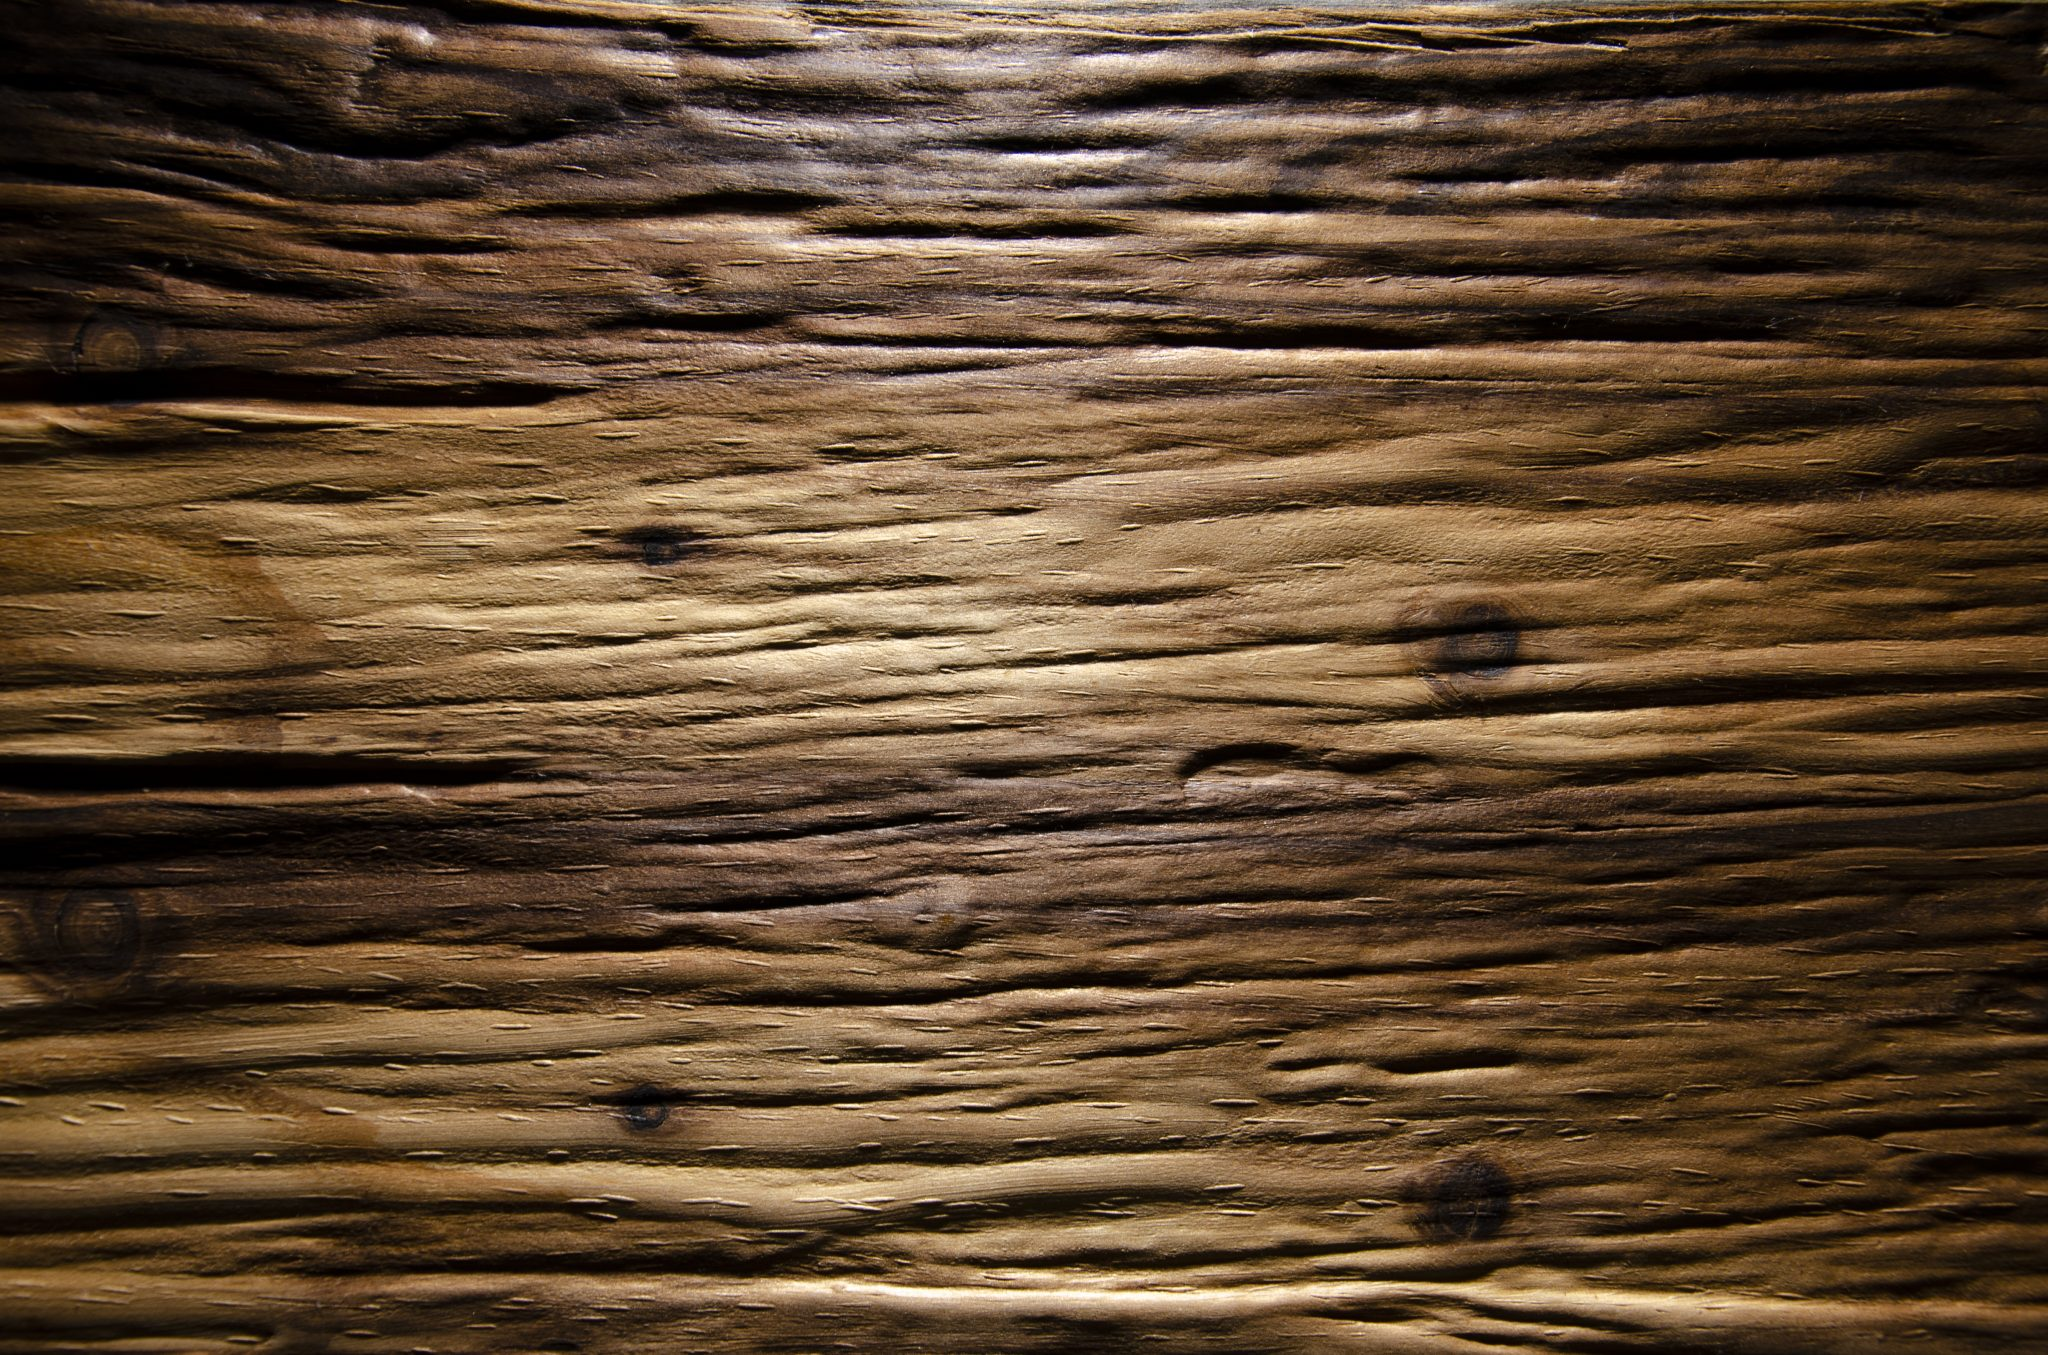 Bild Holz 2578 - Rough Old Wood - Holz In Form